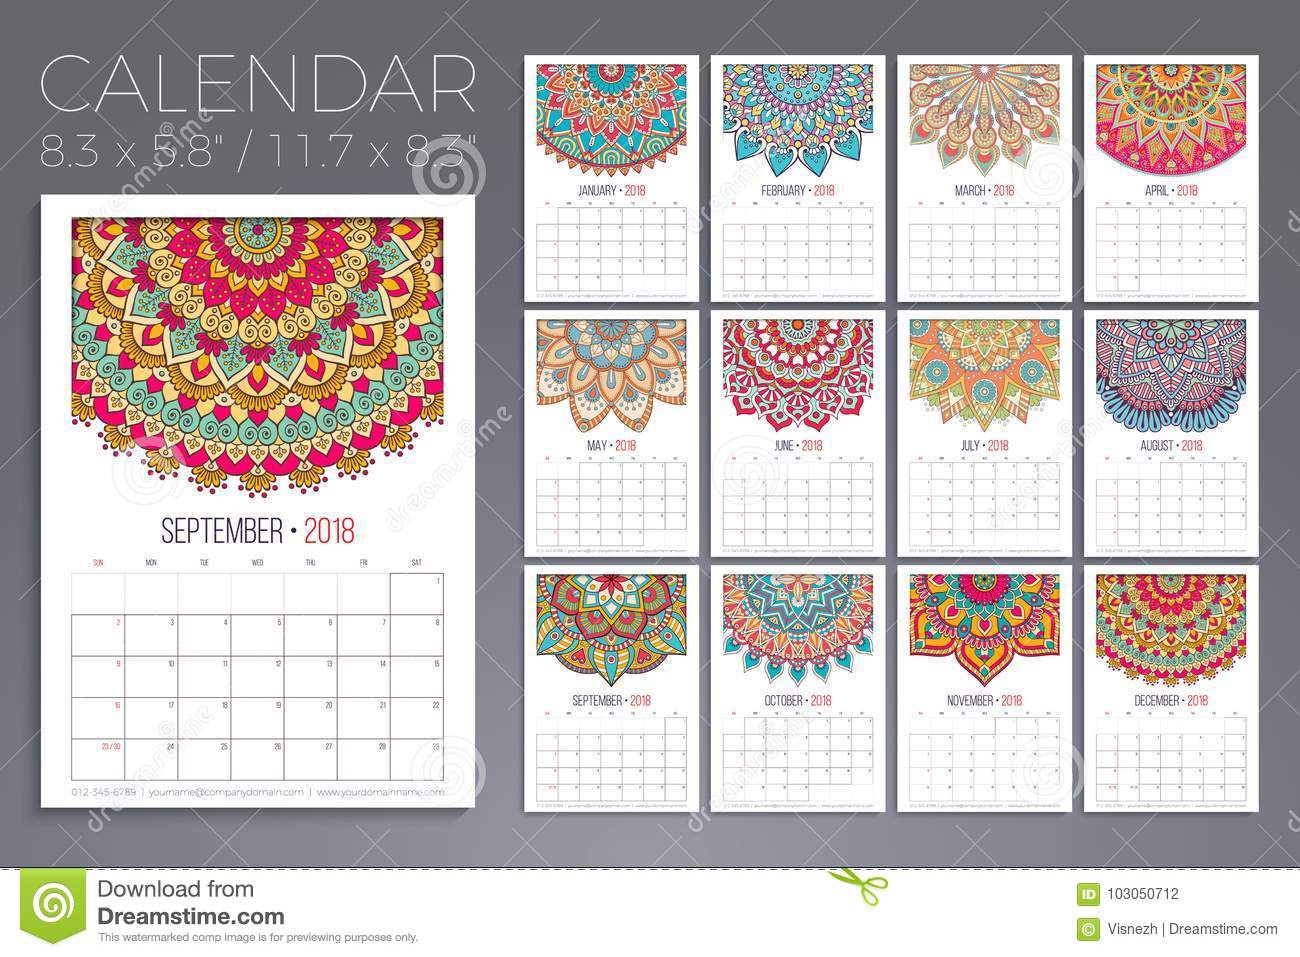 Calendar Vintage Vector : Calendar vintage decorative elements oriental